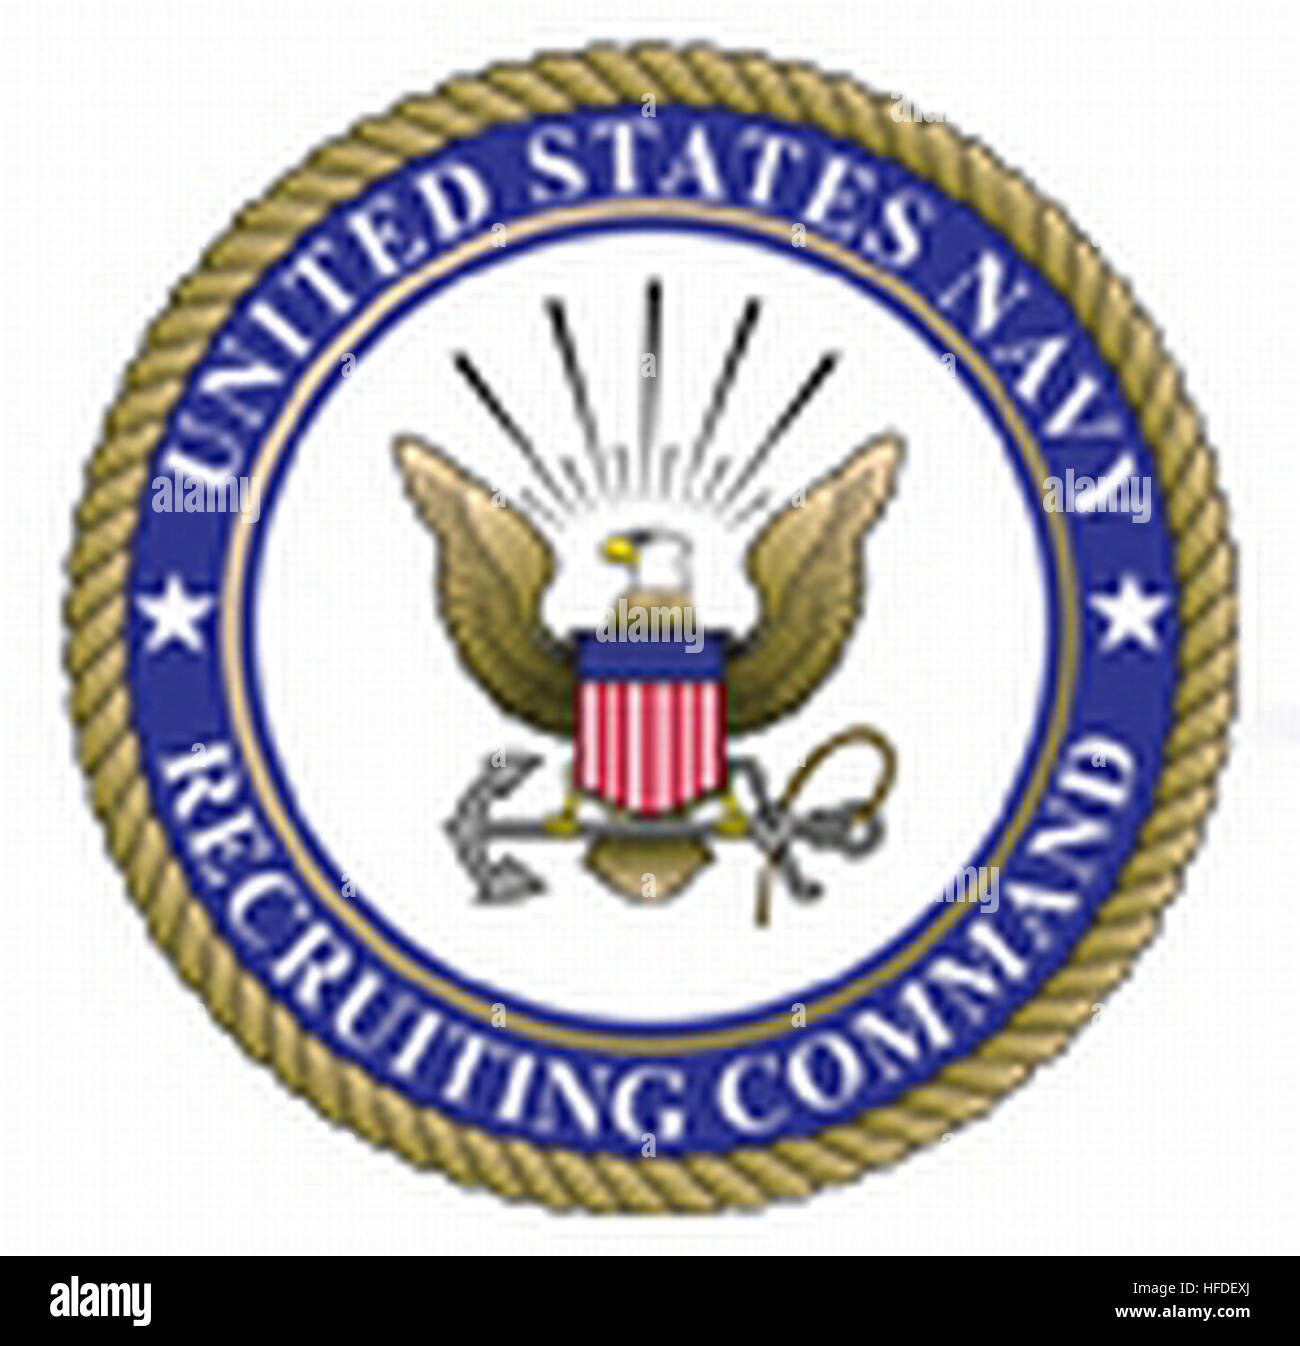 United navy recruiting command seal stock photos united navy united states navy recruiting command seal stock image biocorpaavc Gallery